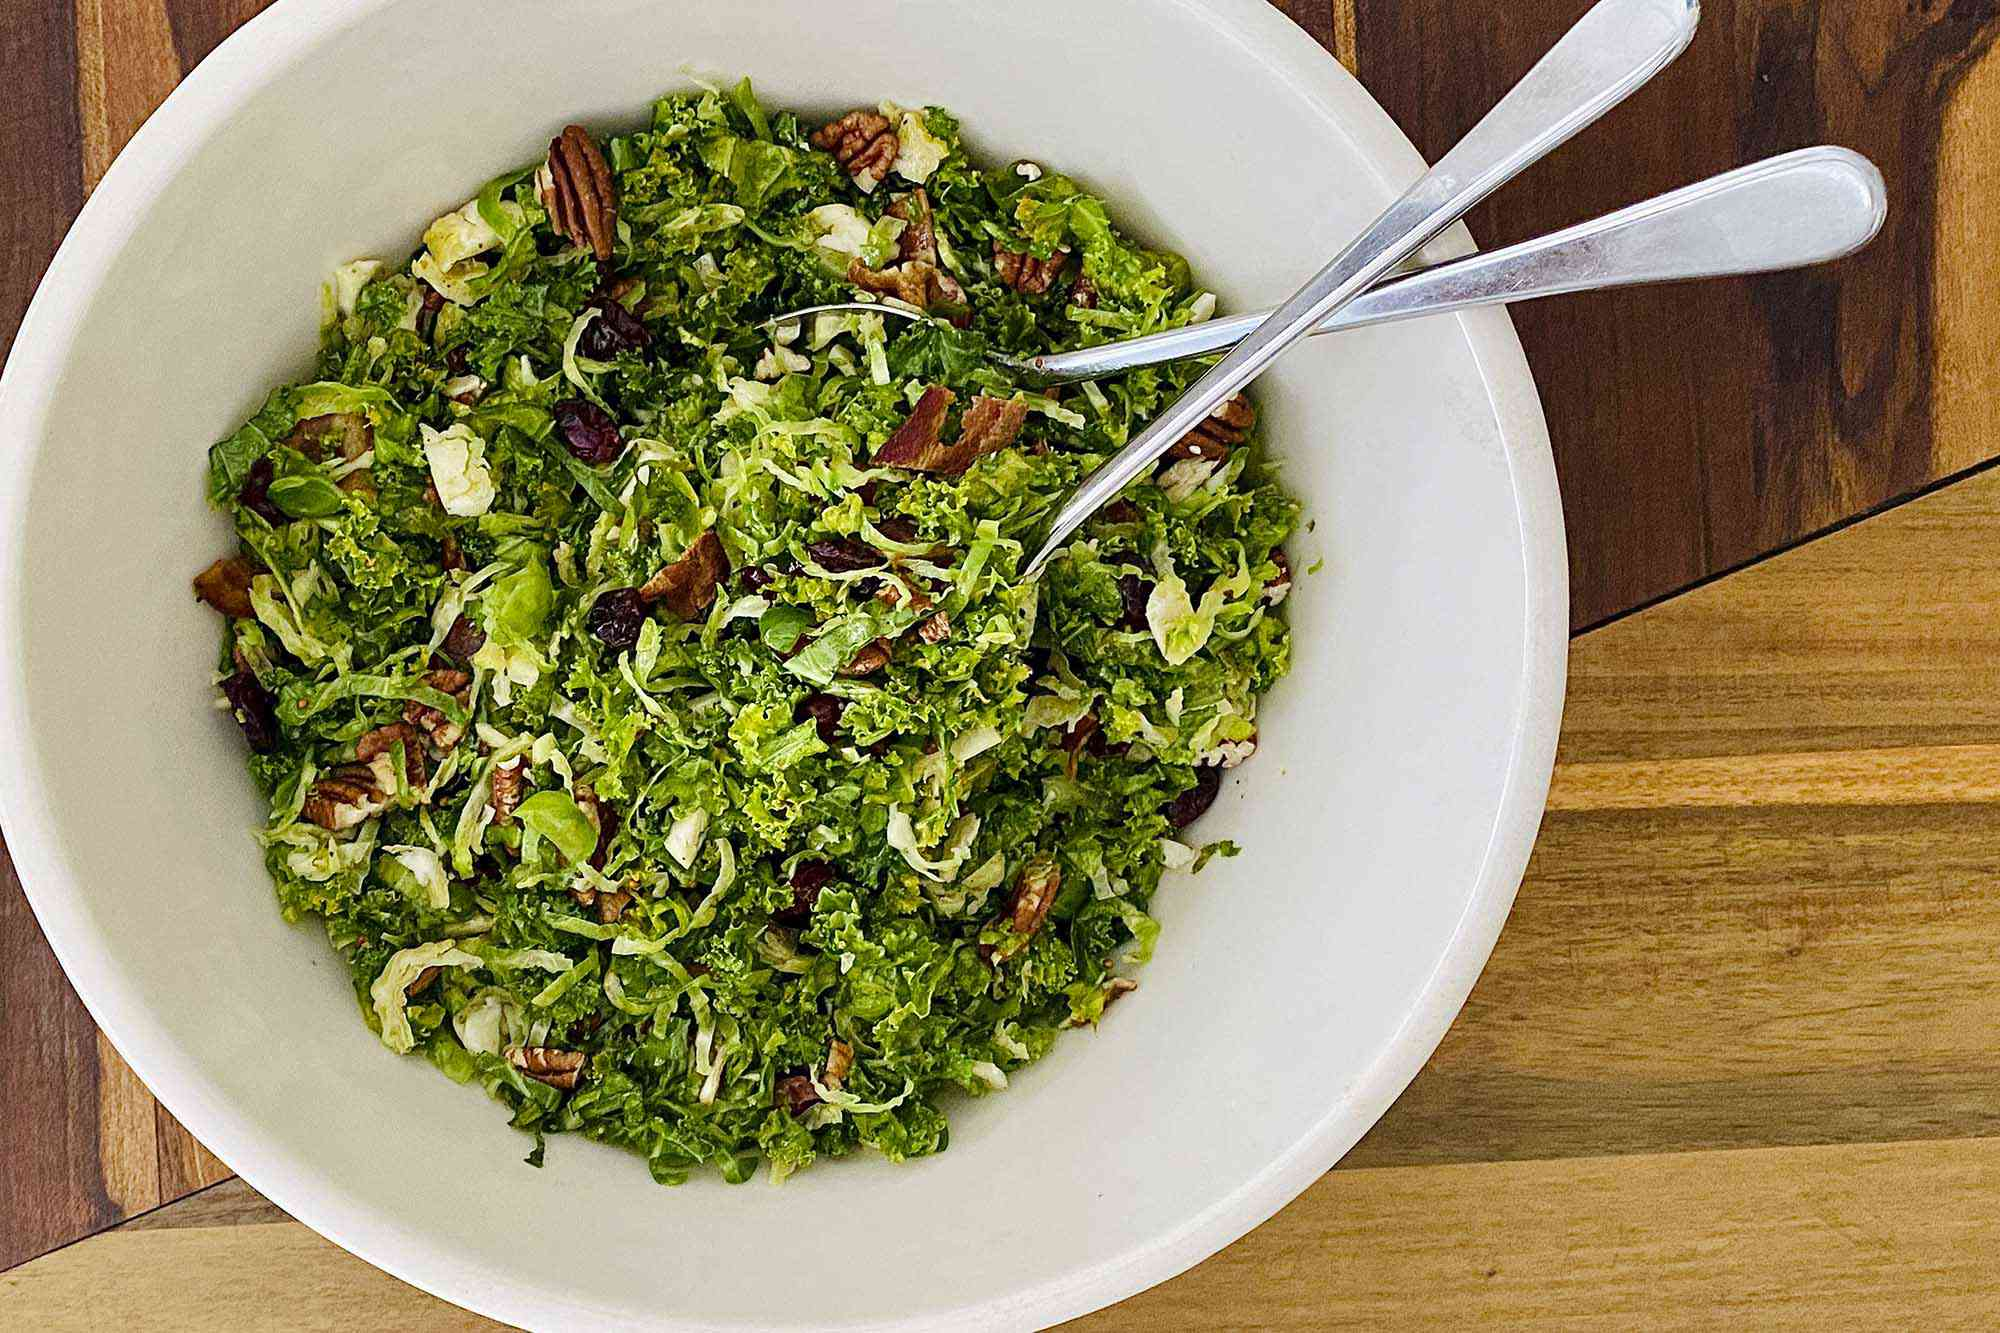 A serving bowl with Raw Kale and Shaved Brussels Sprout Salad with Maple Dijon Vinaigrette ready to be served.